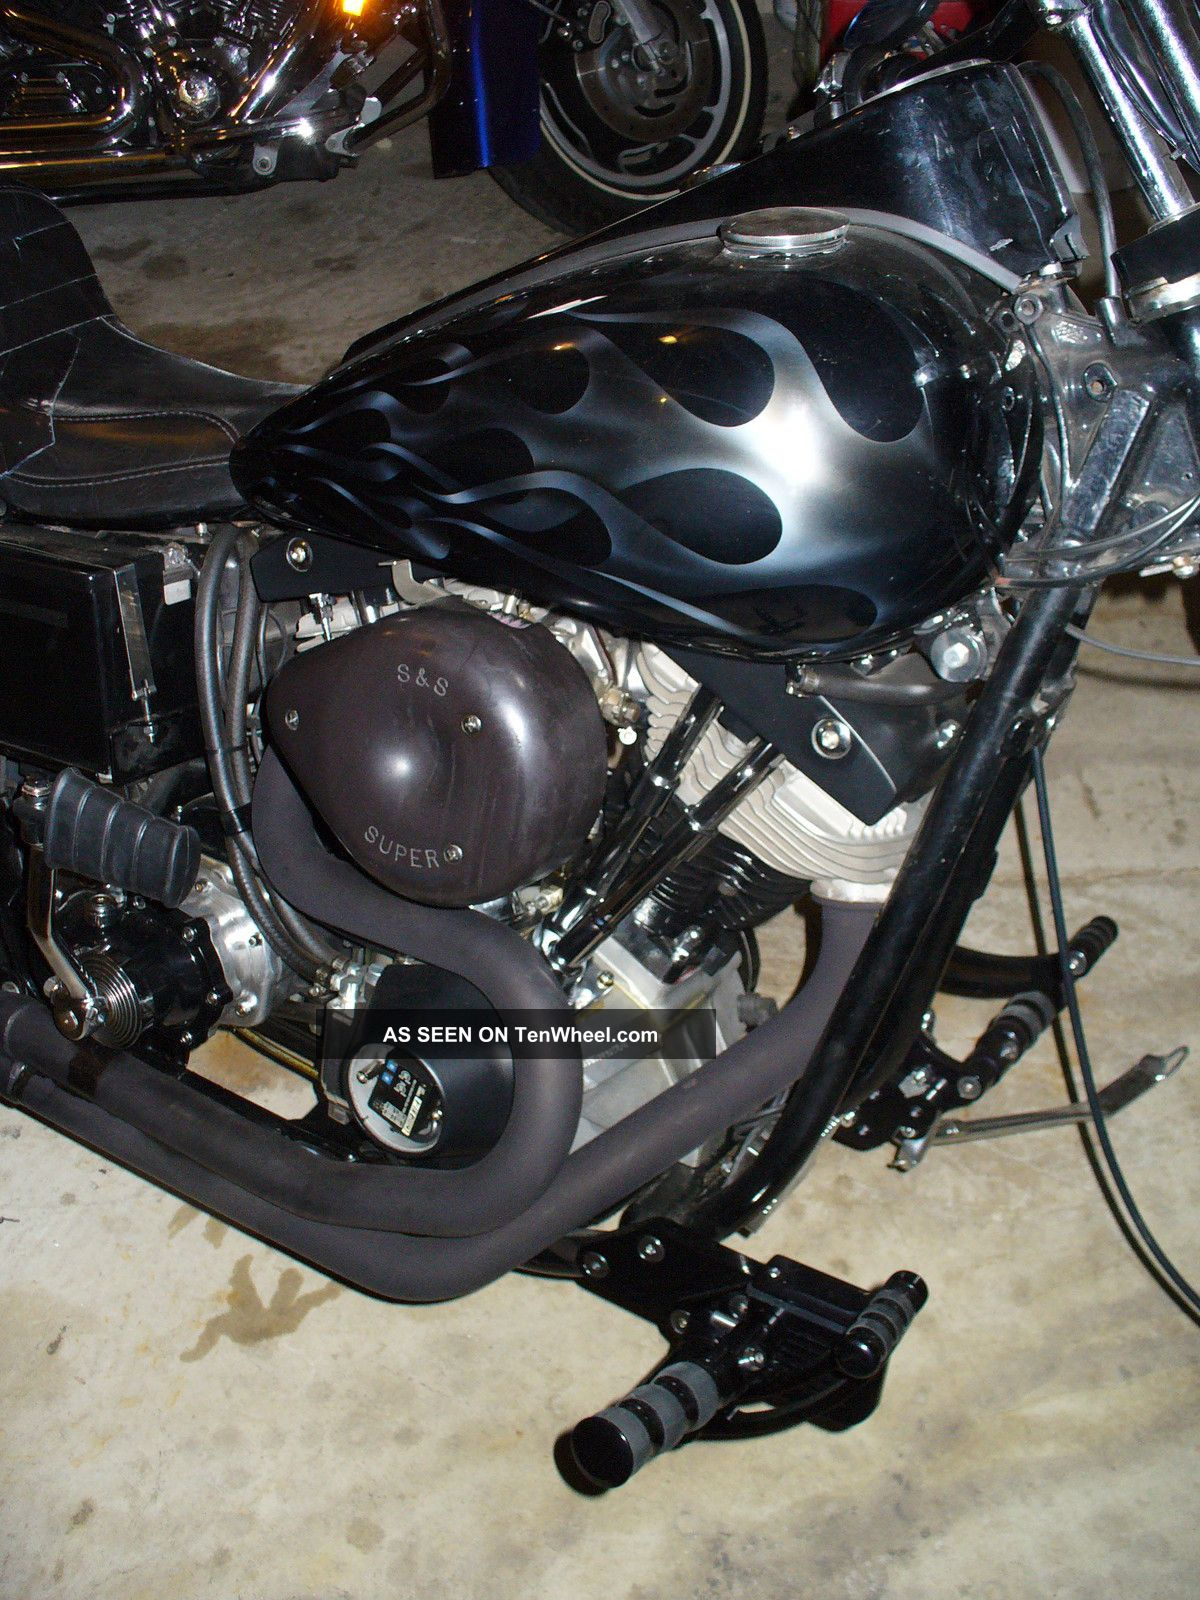 Wiring Diagram 1981 Harley Wide Glide Cover Davidson Sportster Diagrams For 1978 On